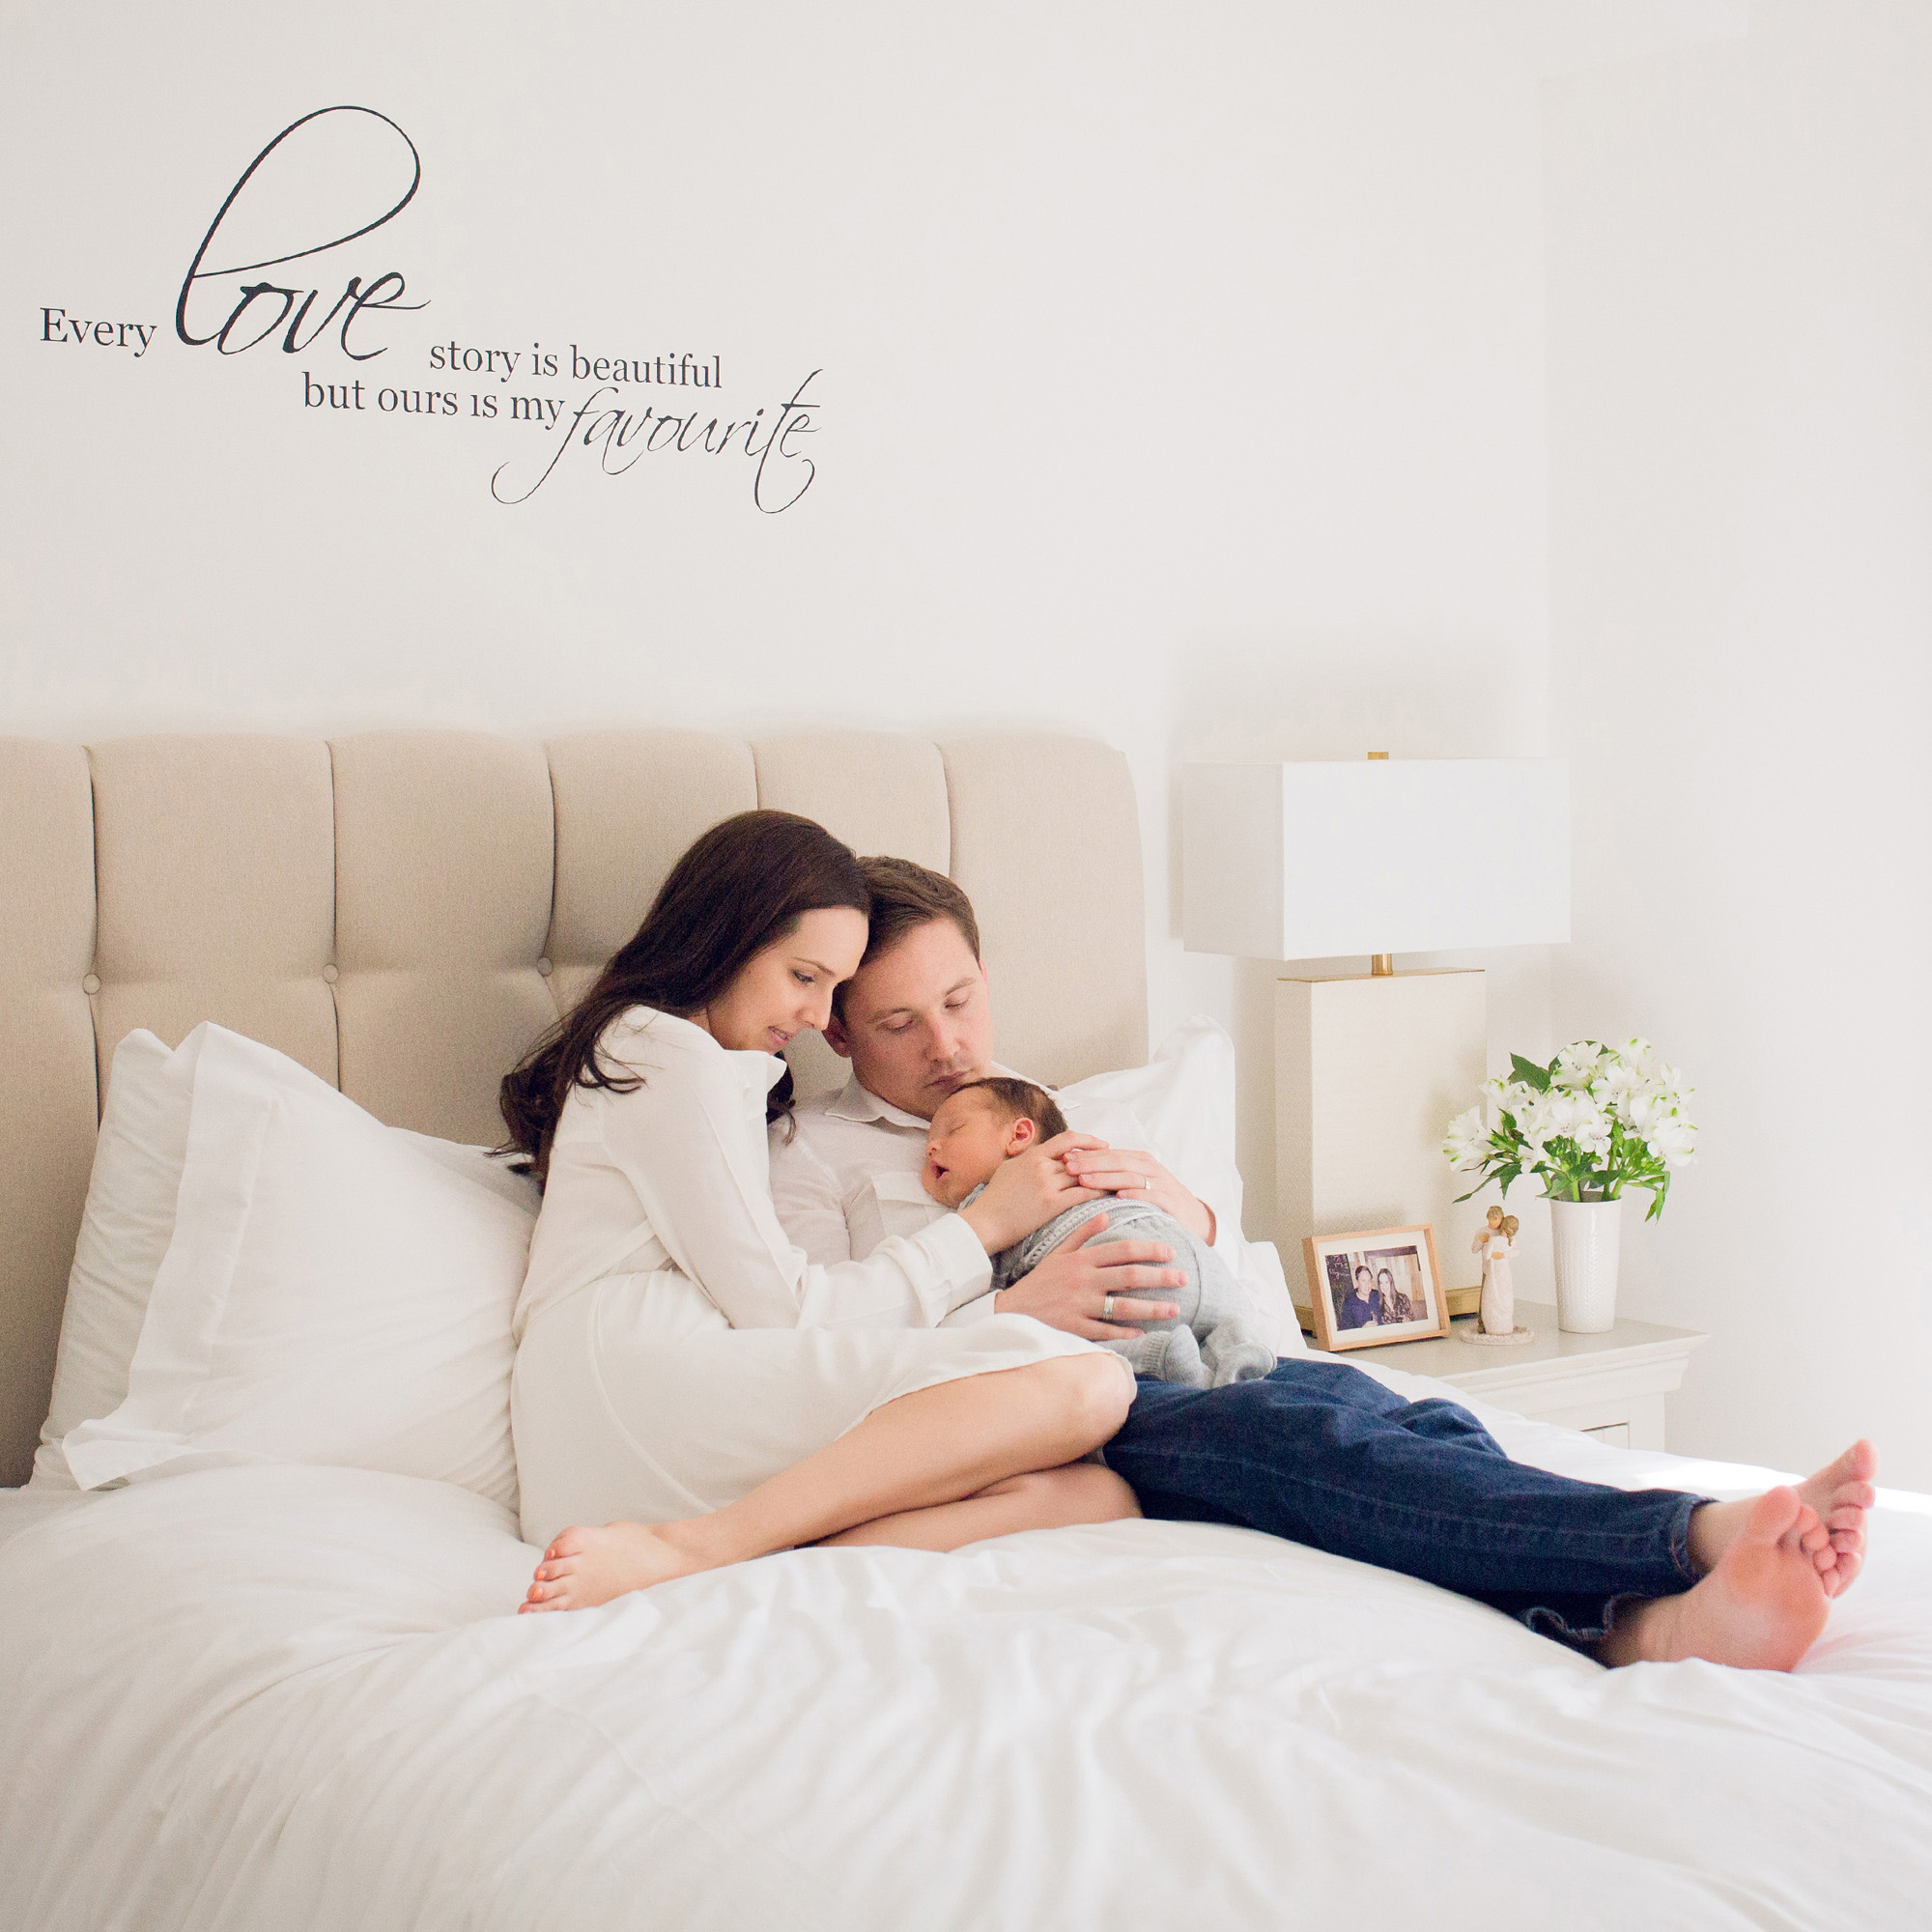 lifestyle-newborn-photography-home-baby-session-ann-wo-london.jpg